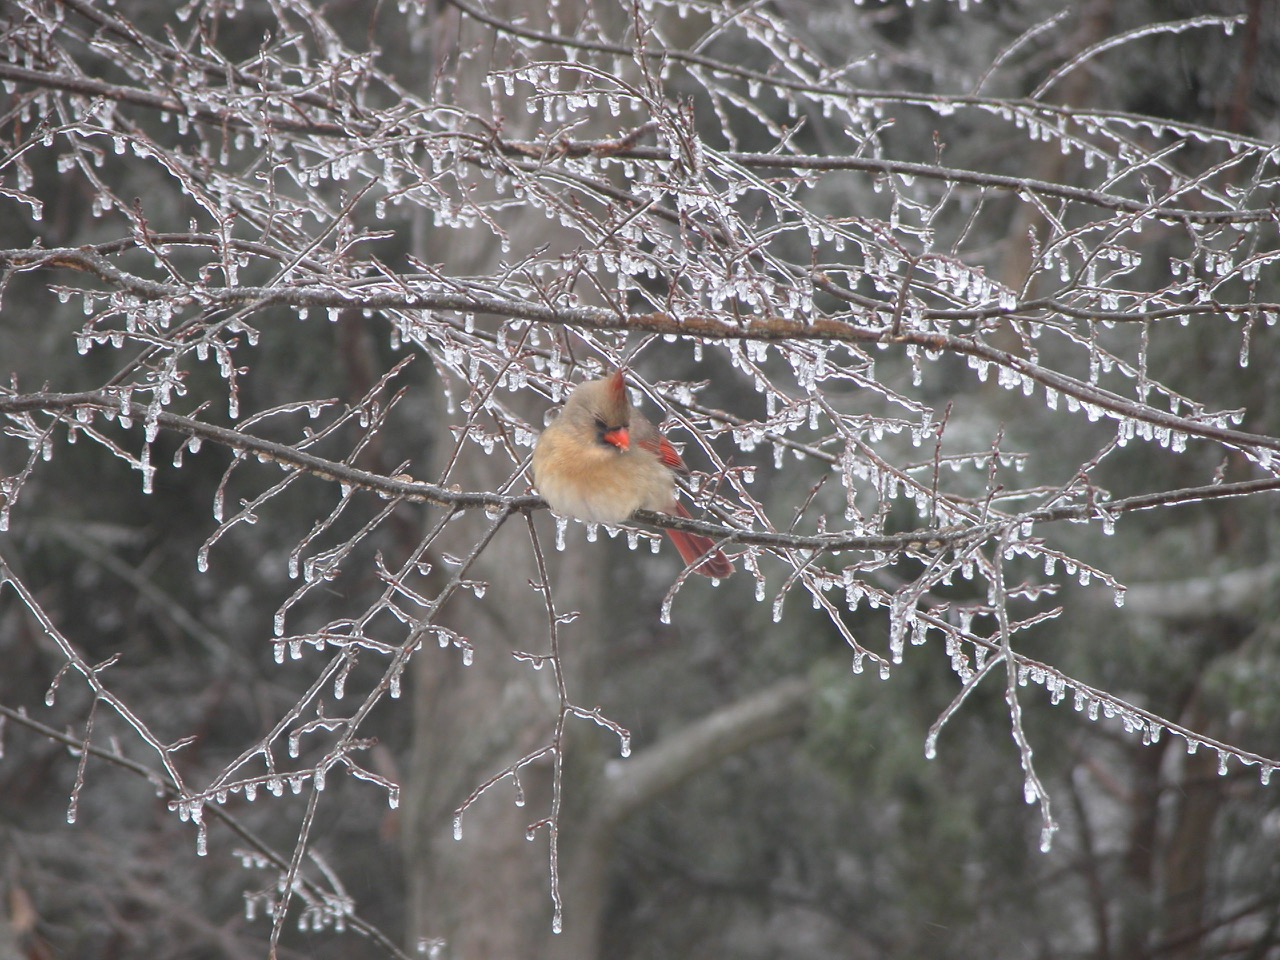 A female cardinal perched on a limb in an ice-coated tree.